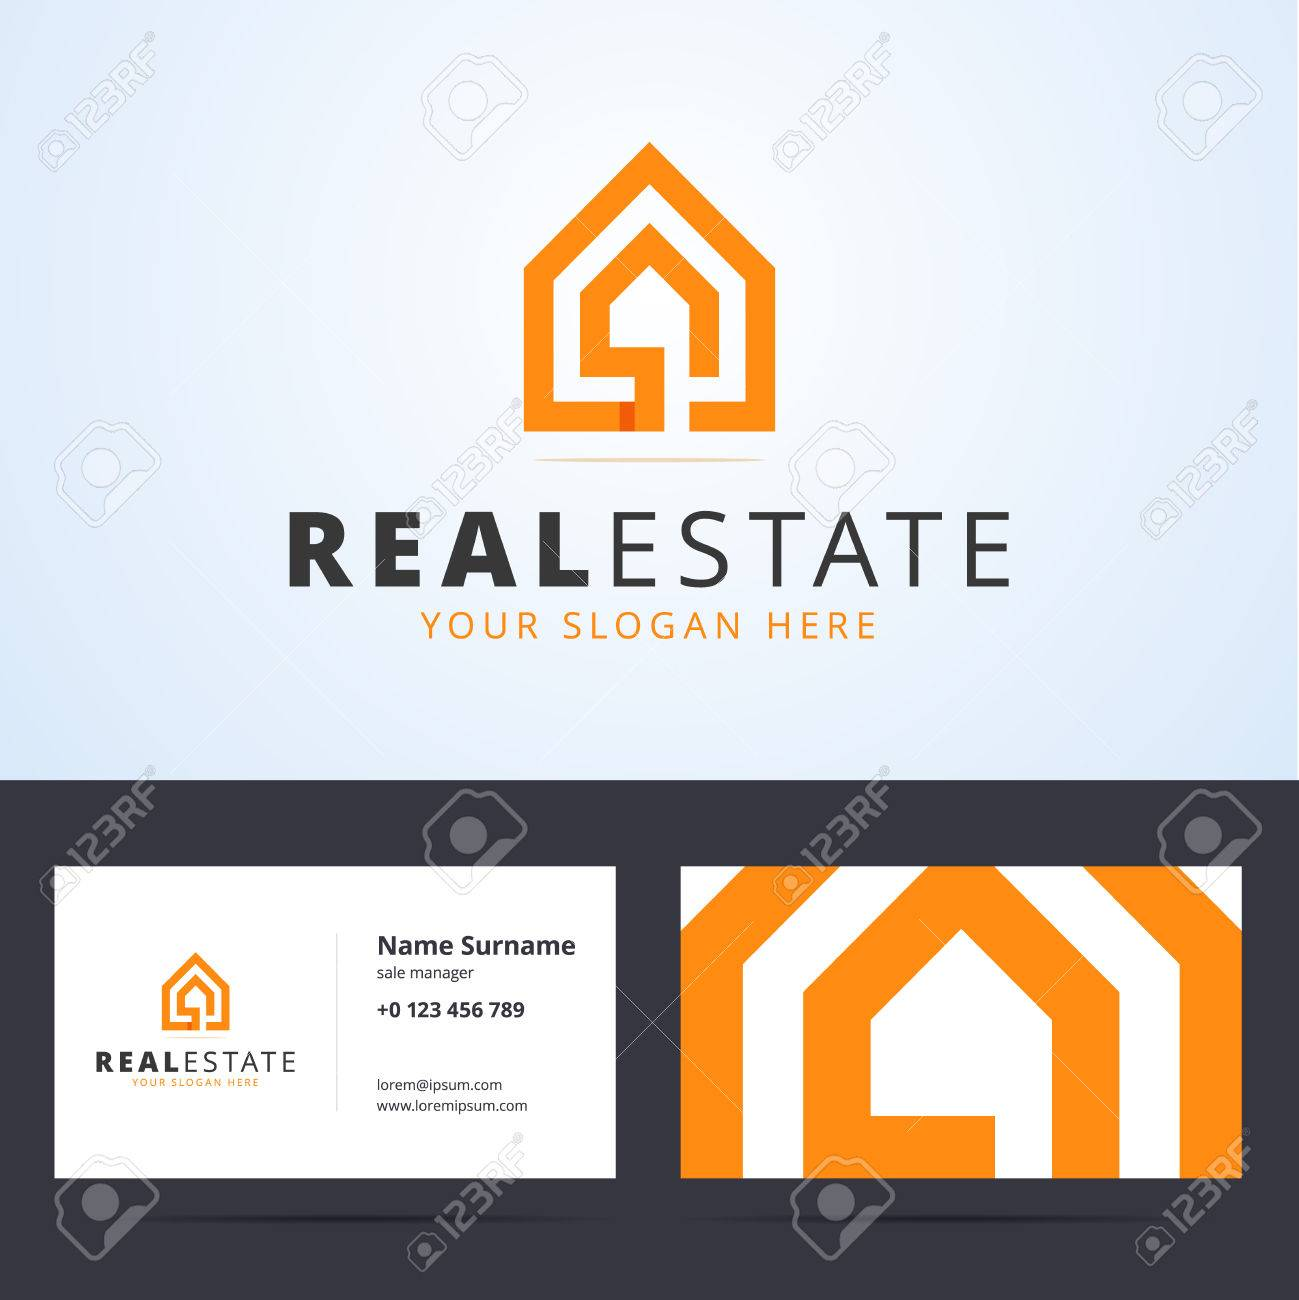 Real estate logo real estate business card template real estate real estate logo real estate business card template real estate sign with home shape cheaphphosting Gallery